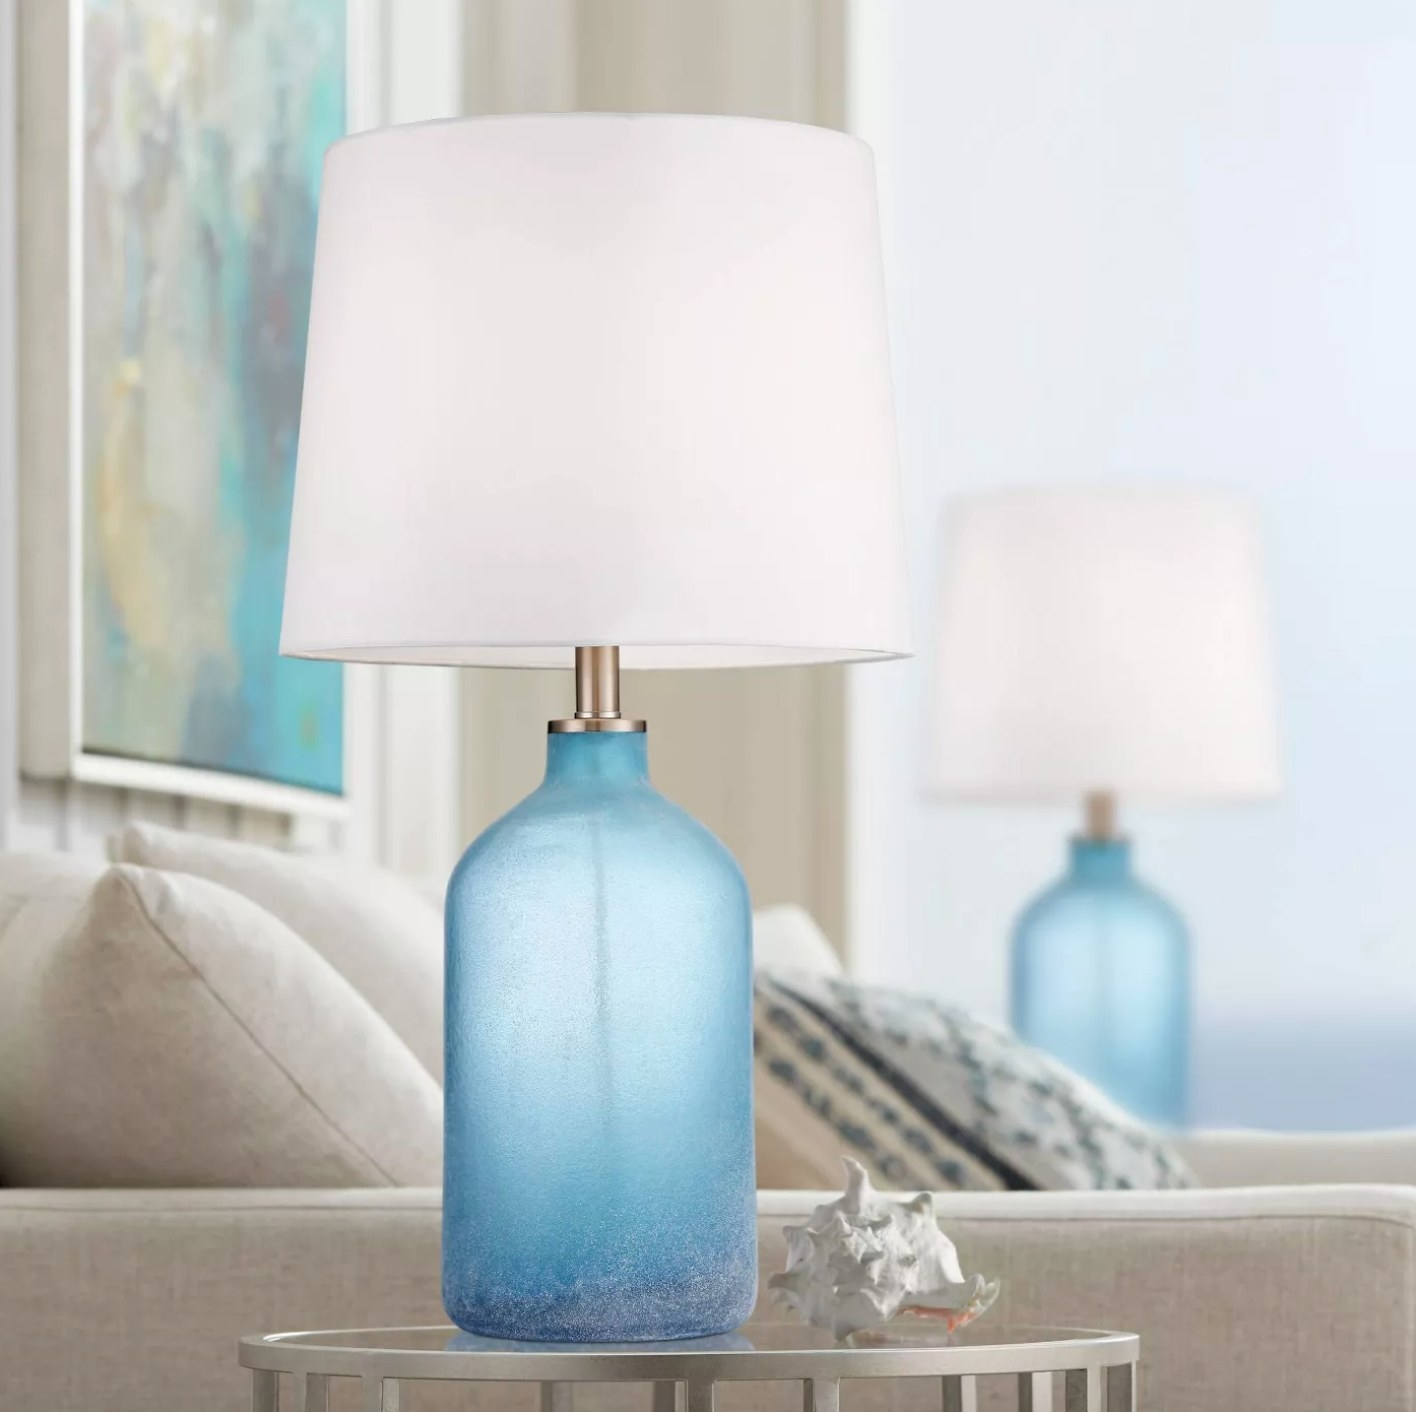 The set of two blue lamps with a glass base and white shade